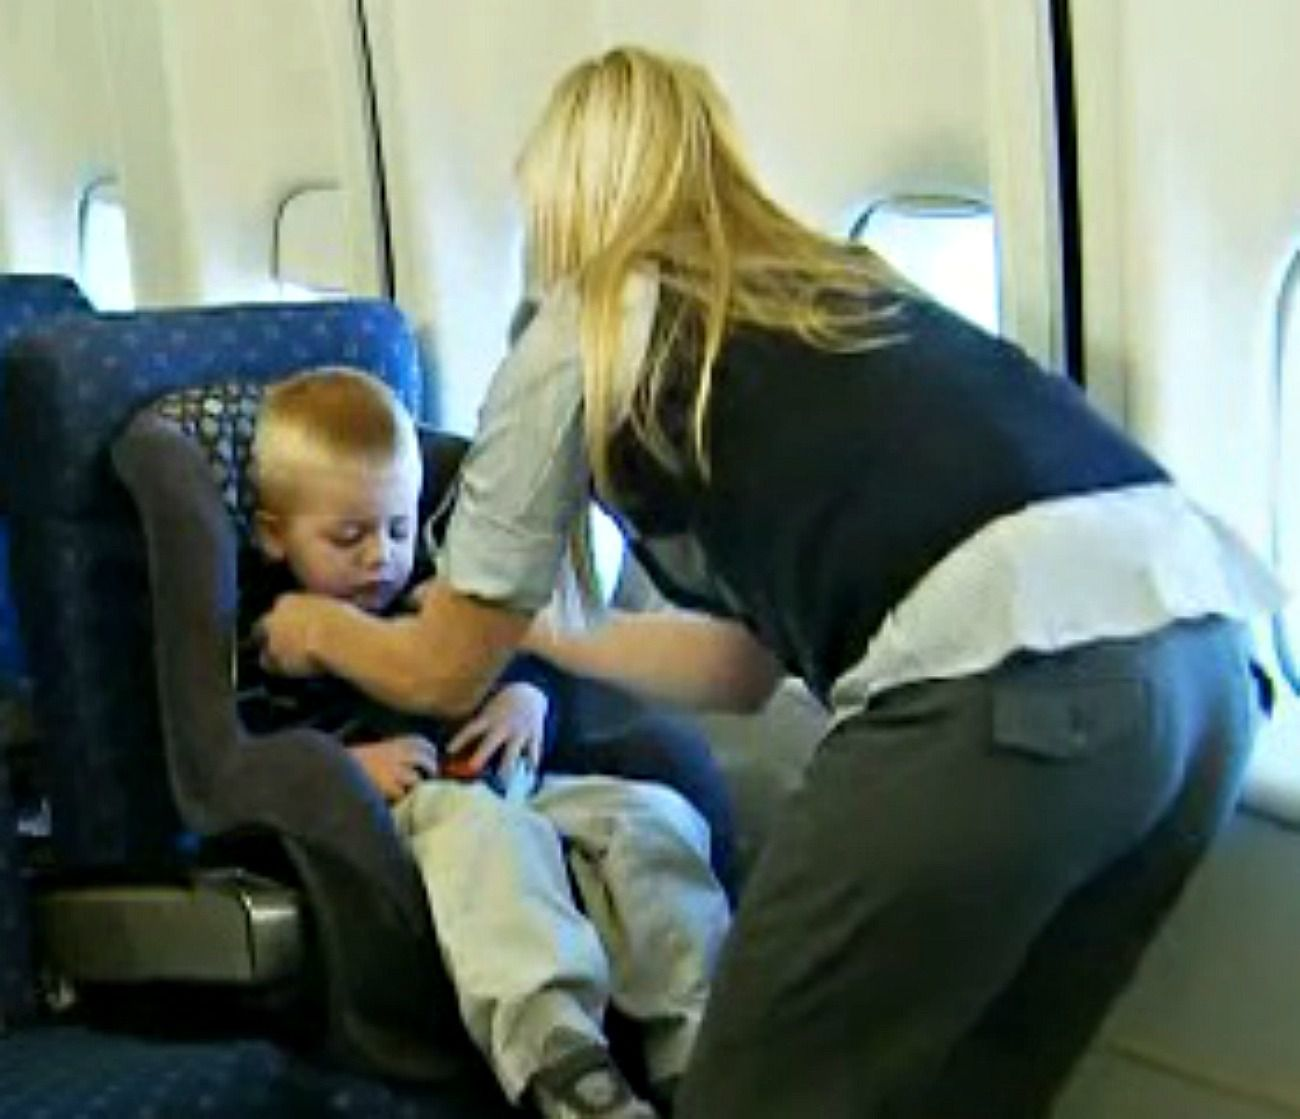 Expert Tips for Safer Air and Car Travel with Young Kids